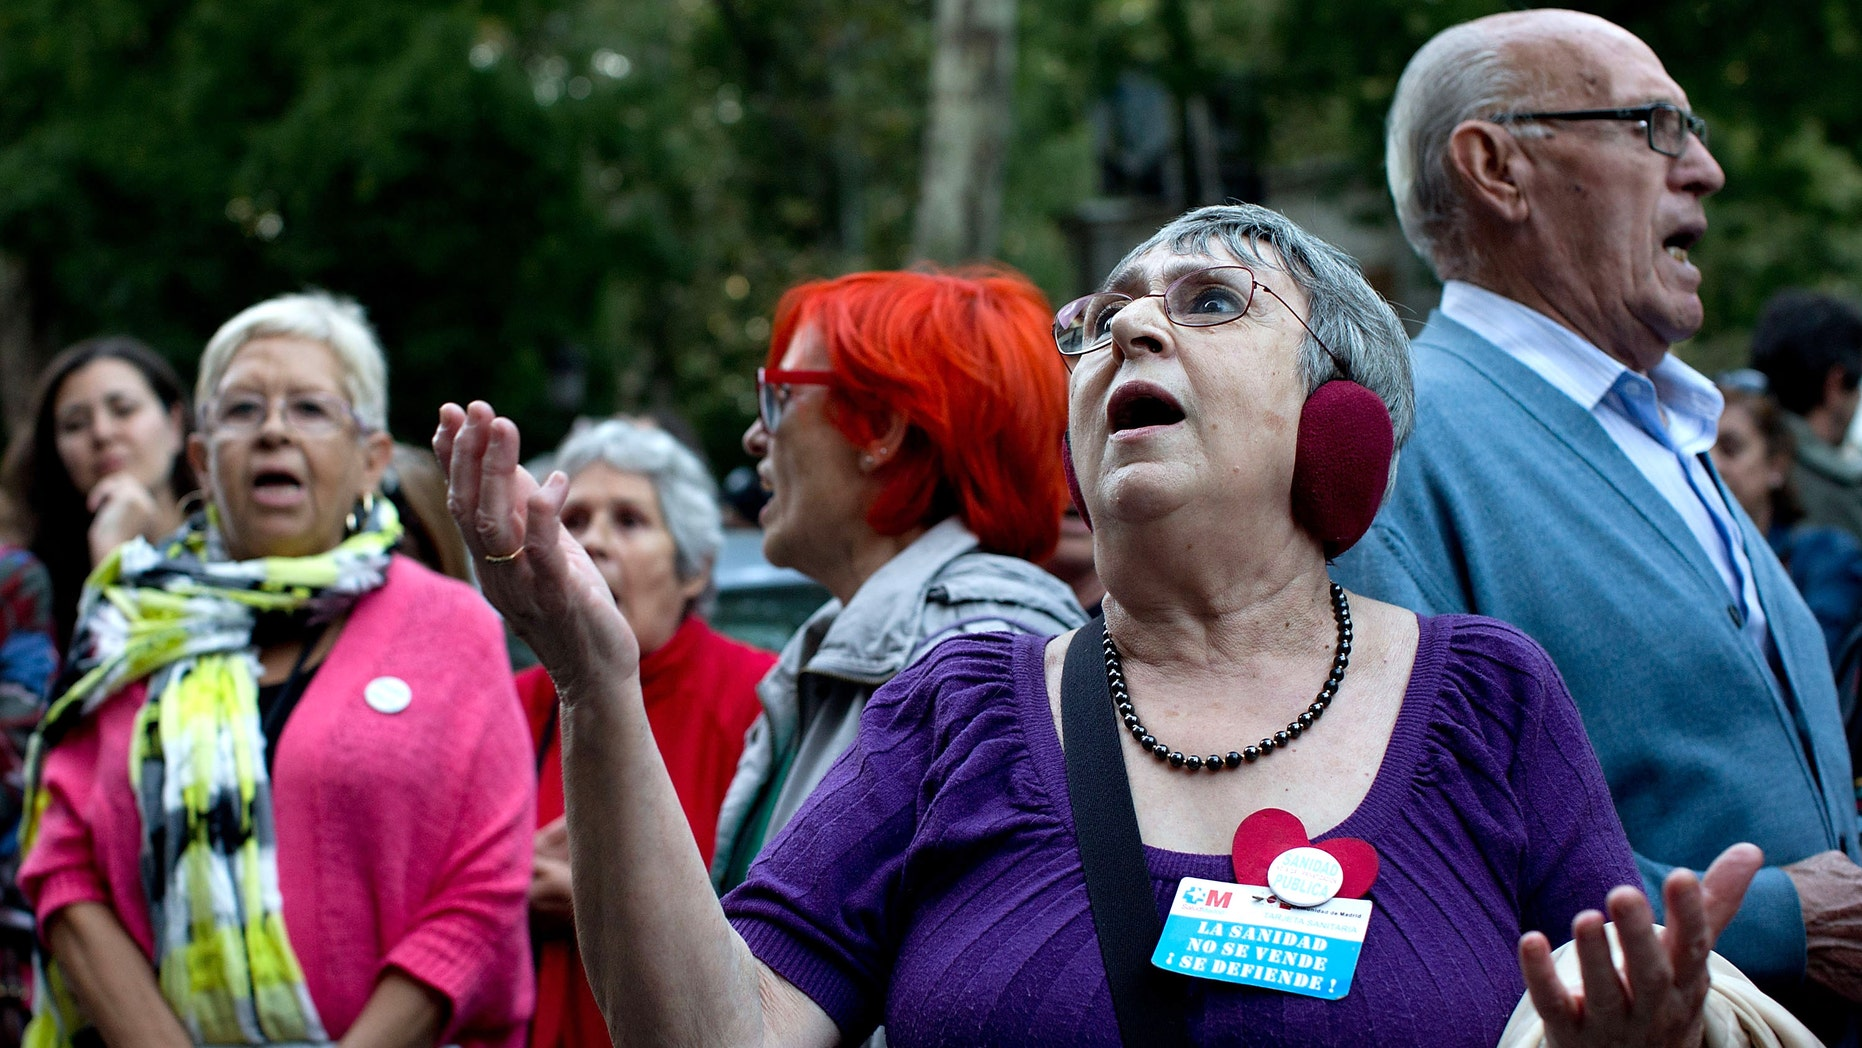 A woman during a demonstration asking for the resignation of Health Minister Ana Mato on October 7, 2014 in Madrid.